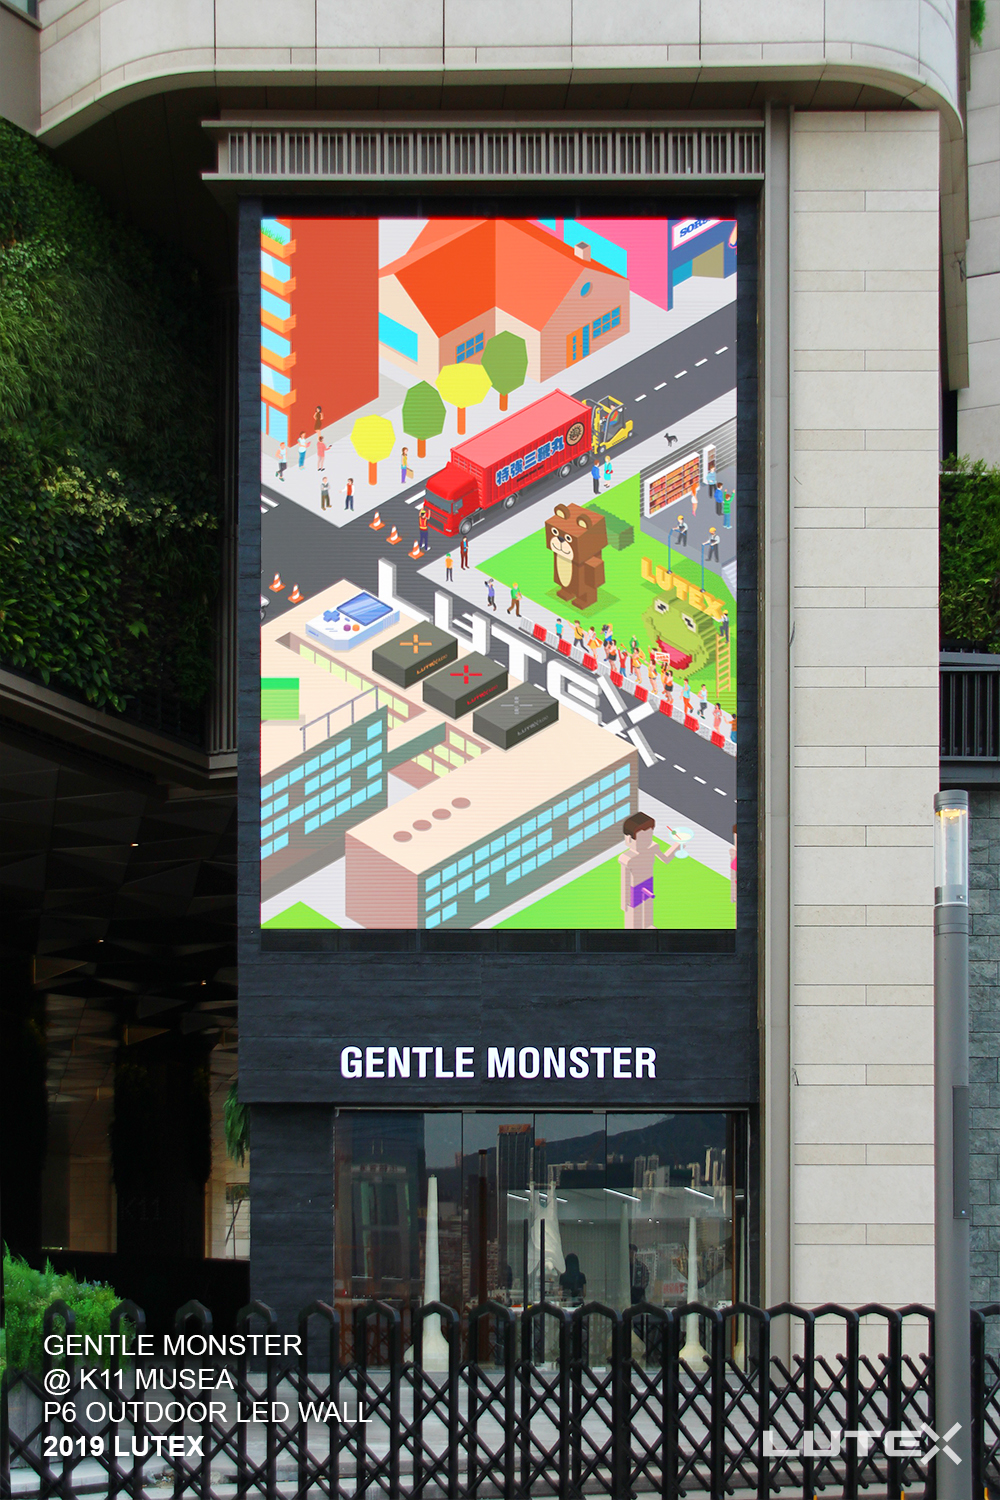 GENTLE MONSTER_K11 MUSEA_P6 OUTDOOR